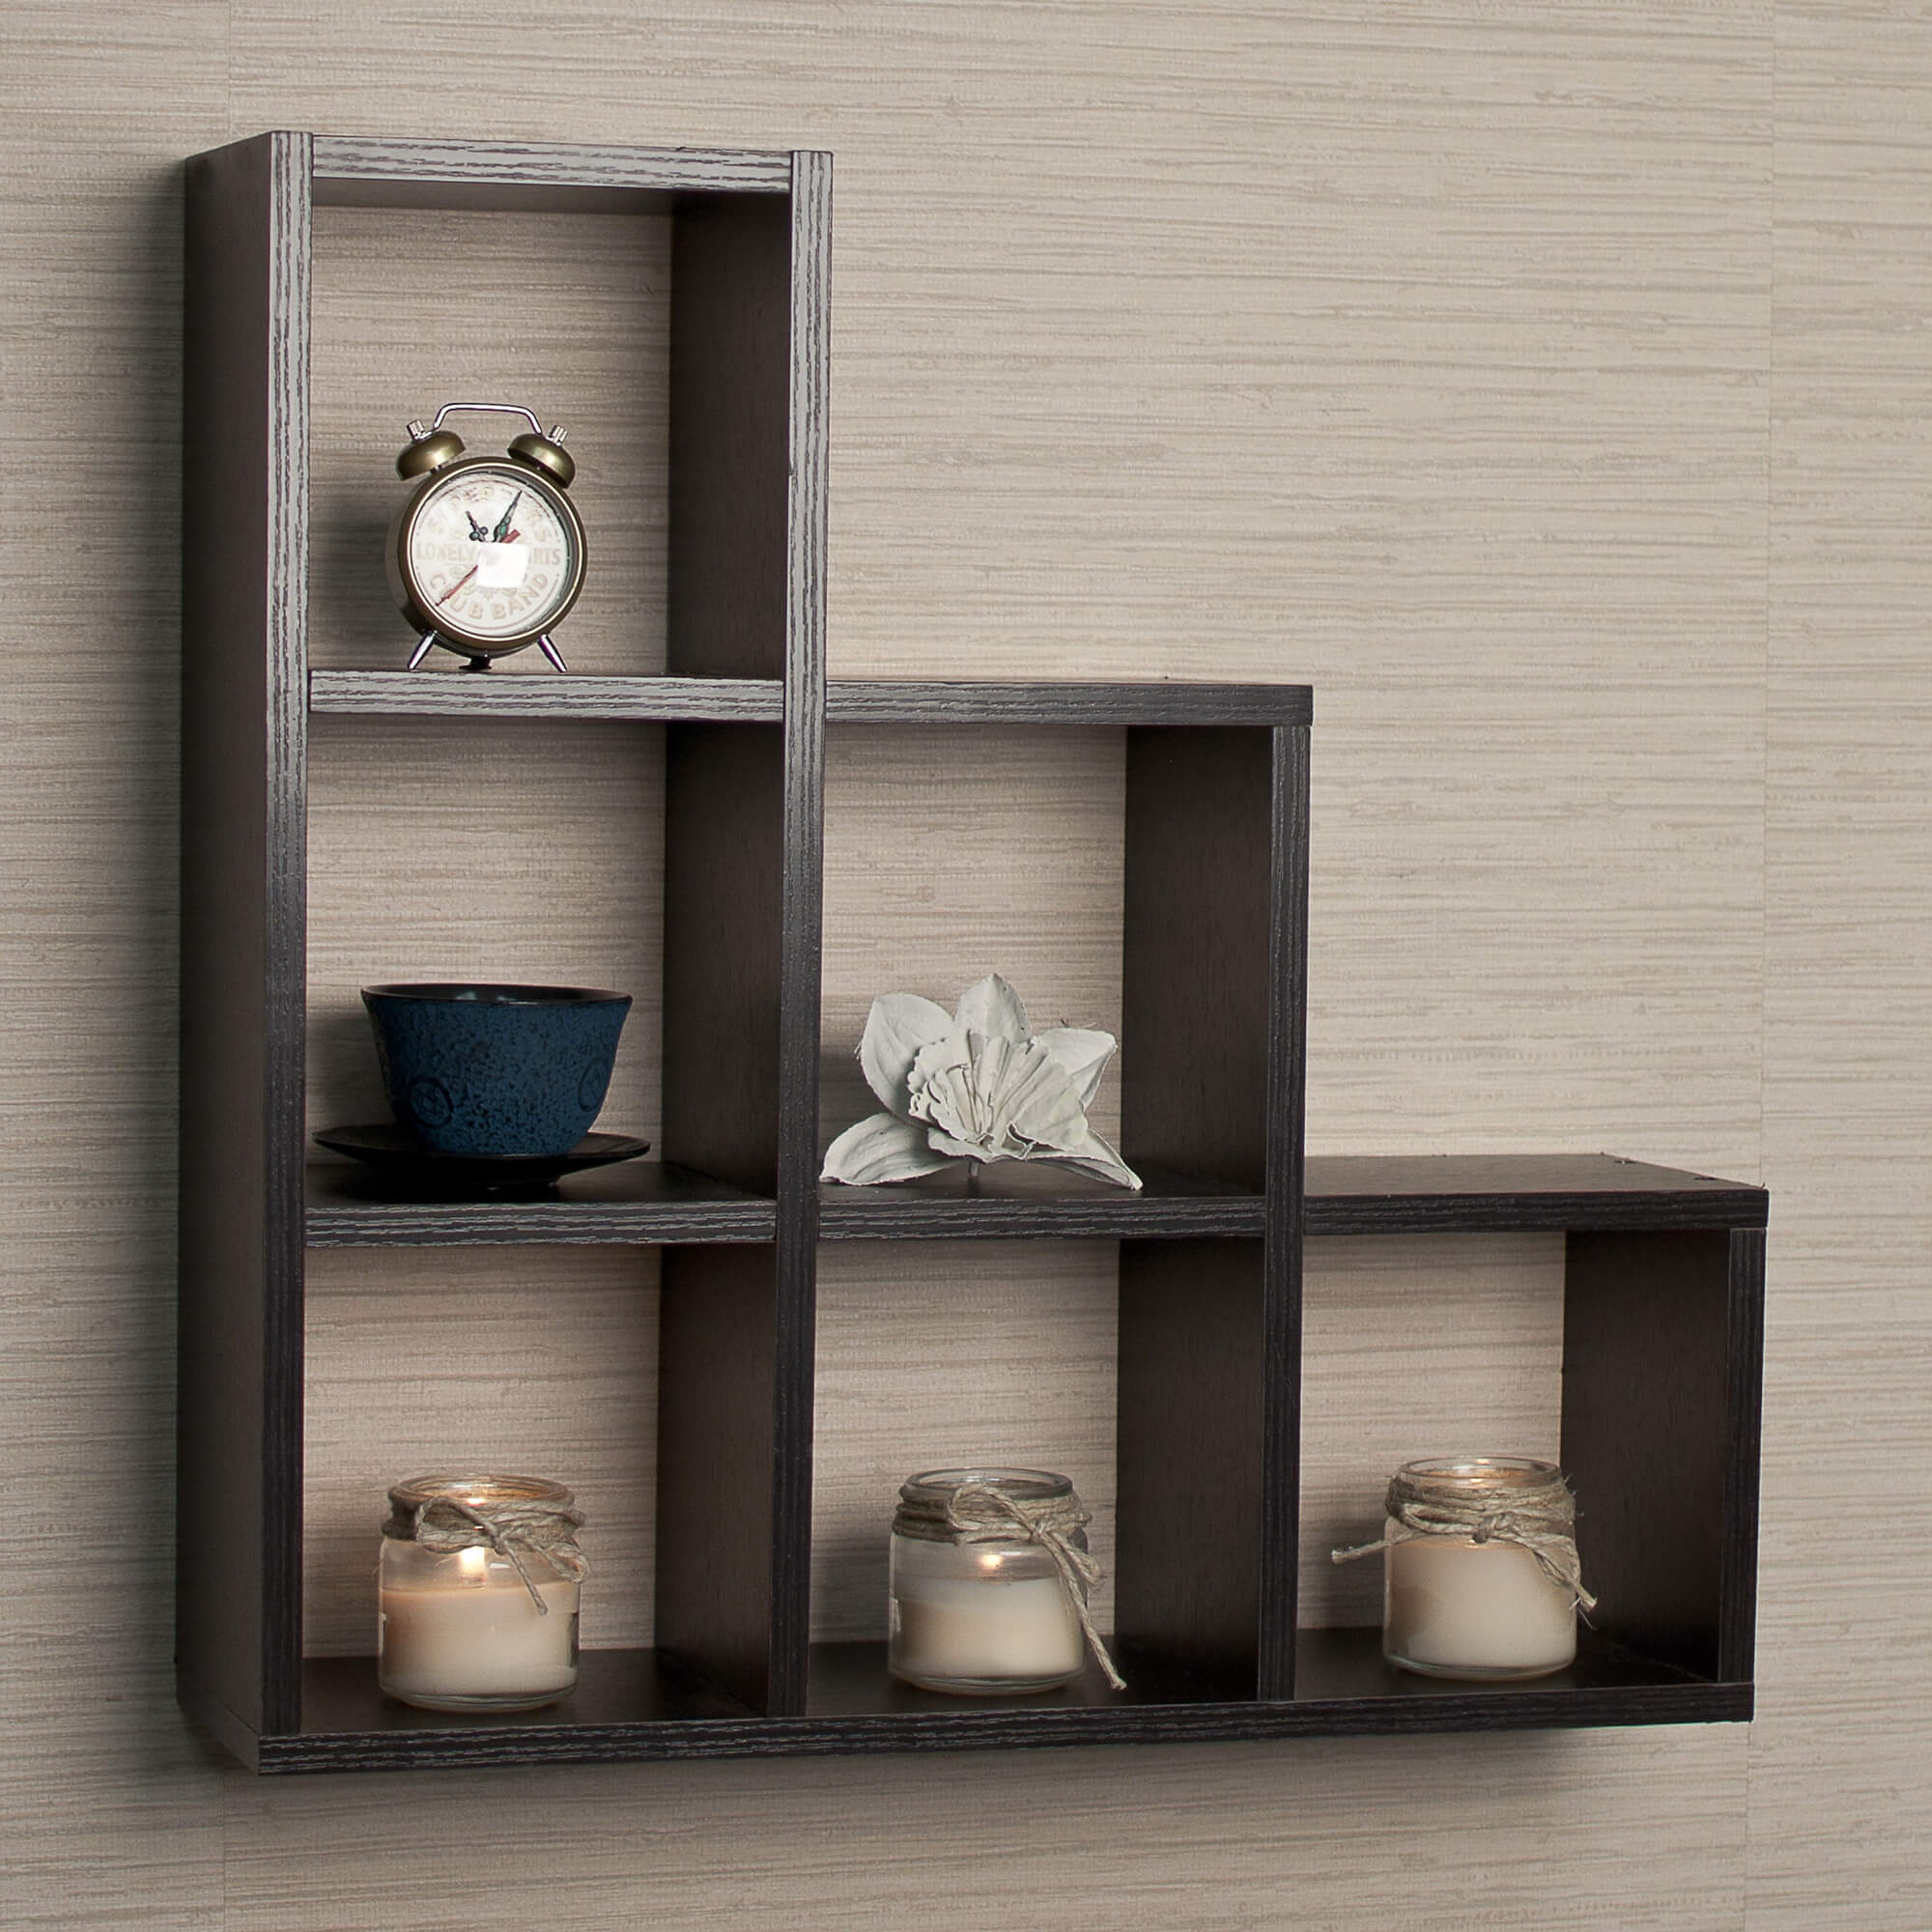 17 types of cube shelves bookcases storage options. Black Bedroom Furniture Sets. Home Design Ideas